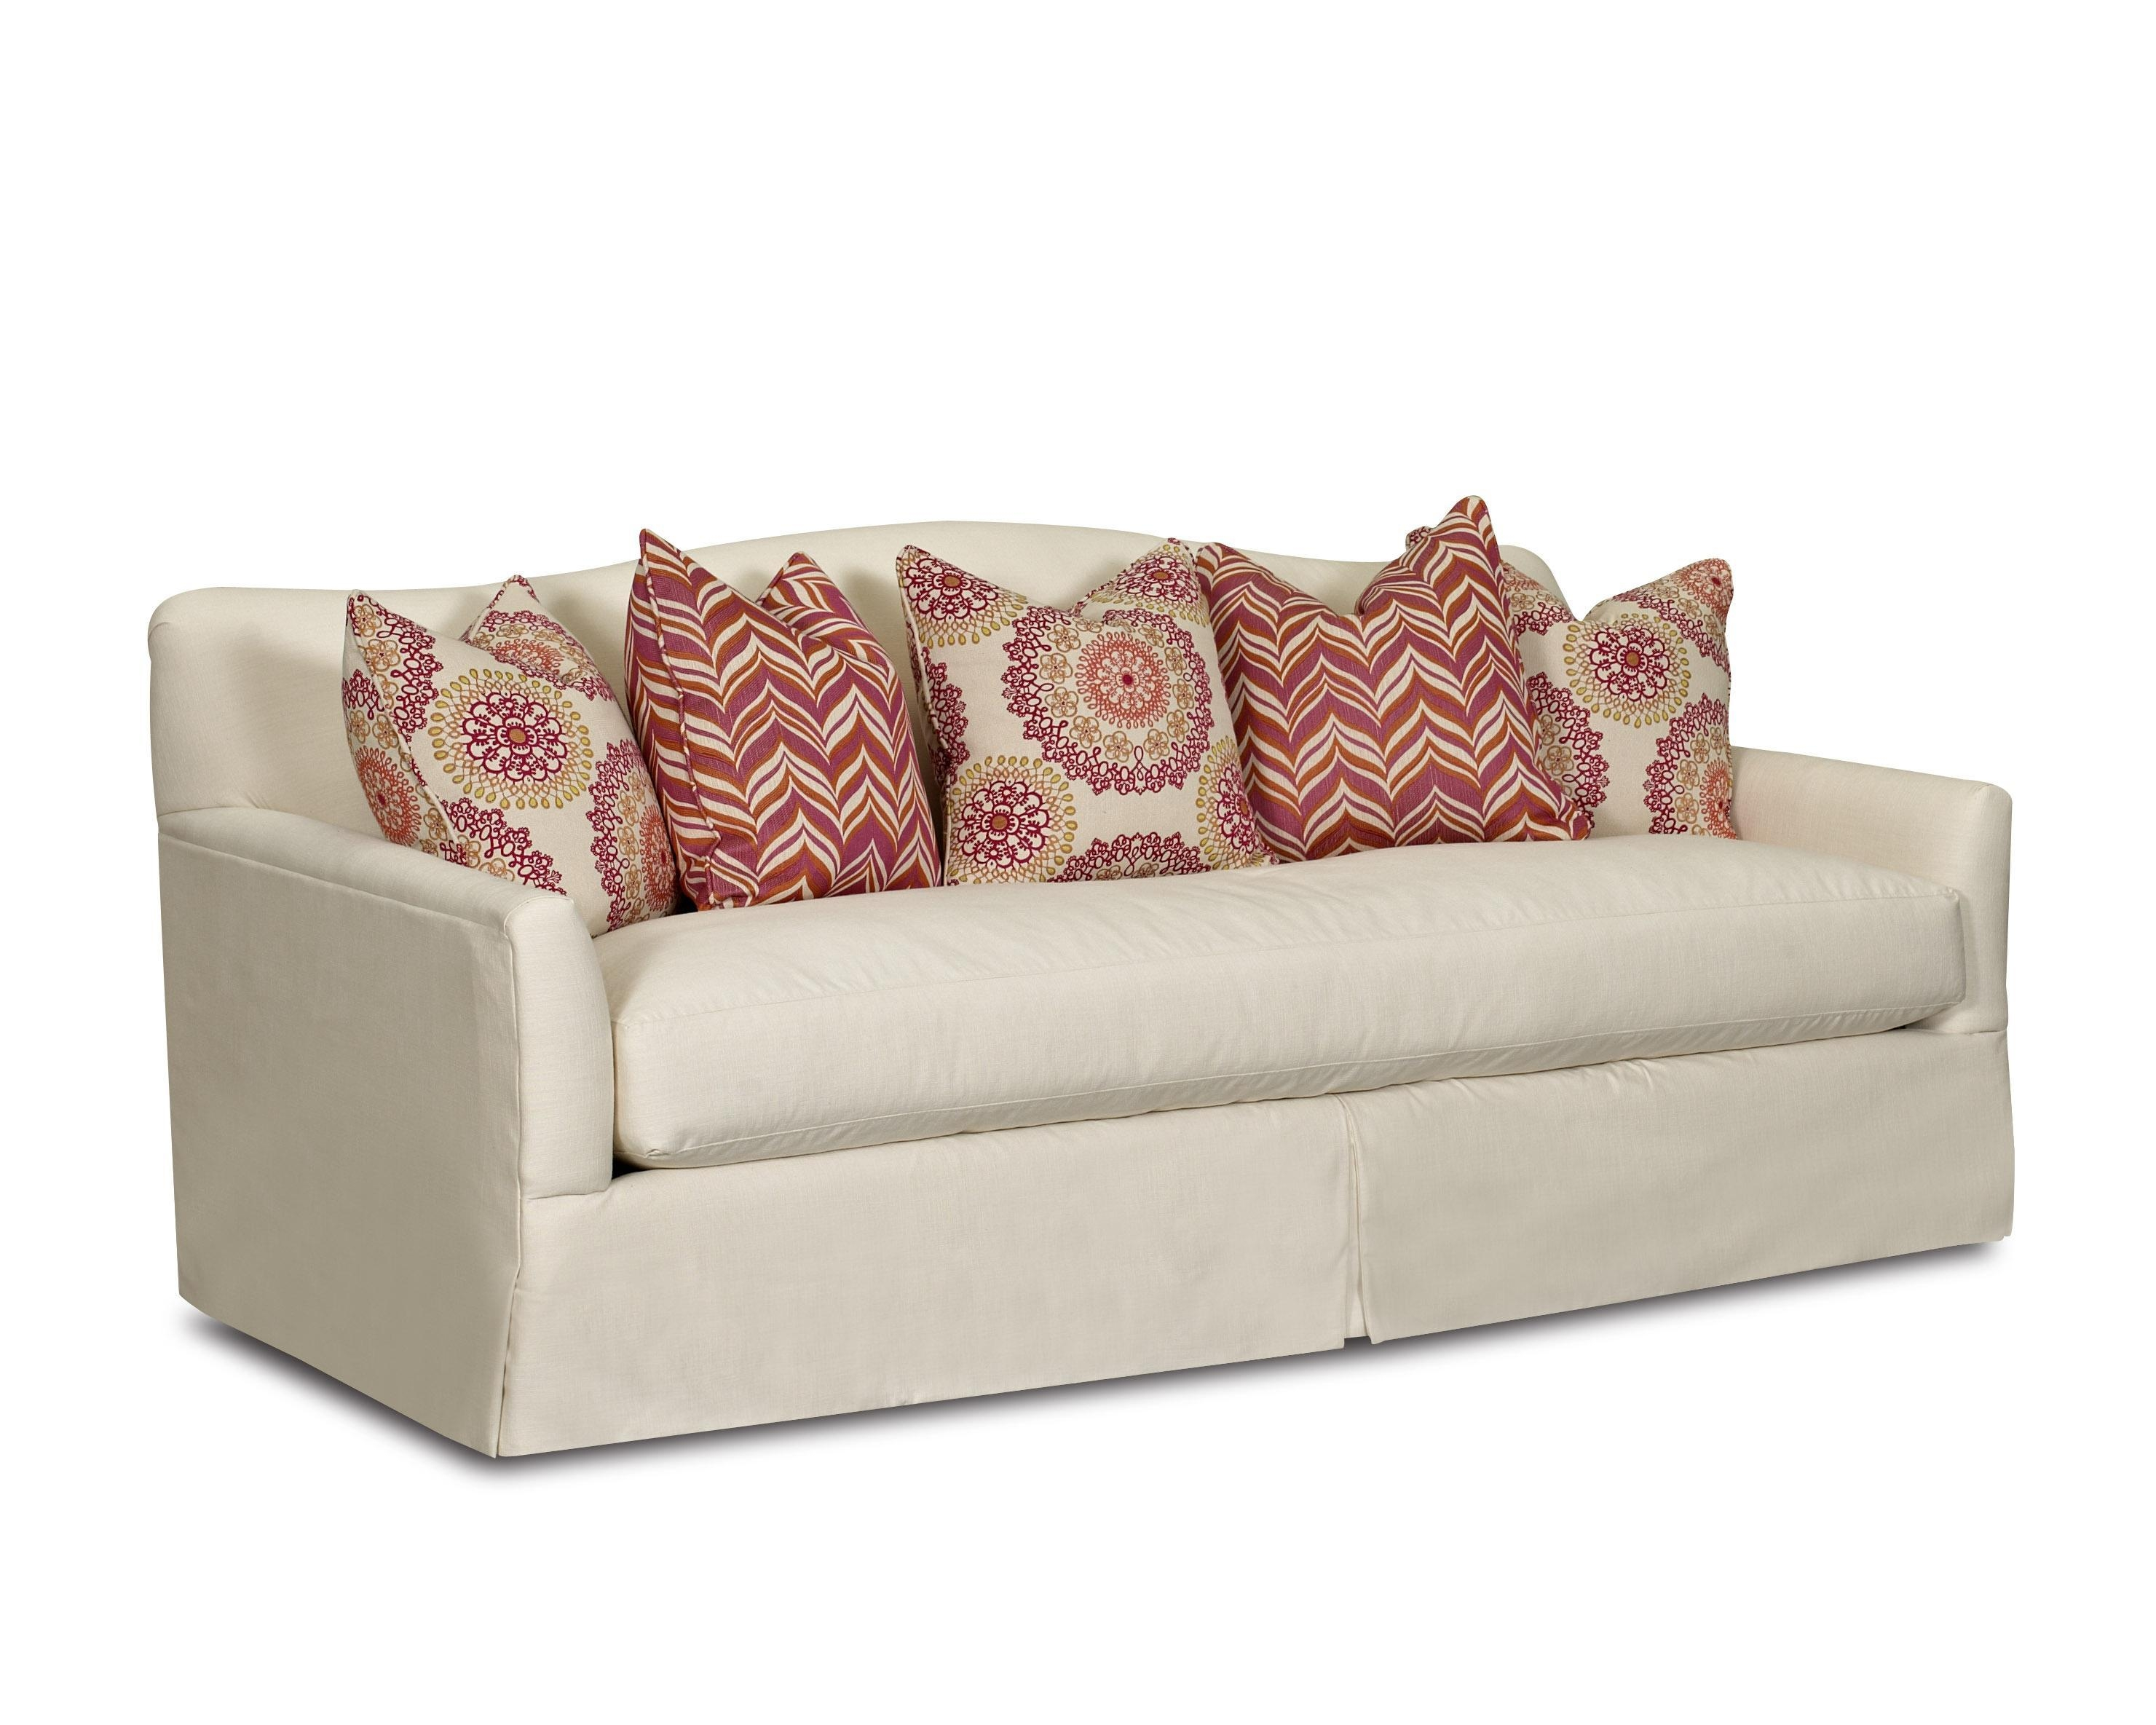 Transitional Stationary Sofa With Bench Seat Cushion, Camel Back Intended For Bench Cushion Sofas (View 7 of 20)